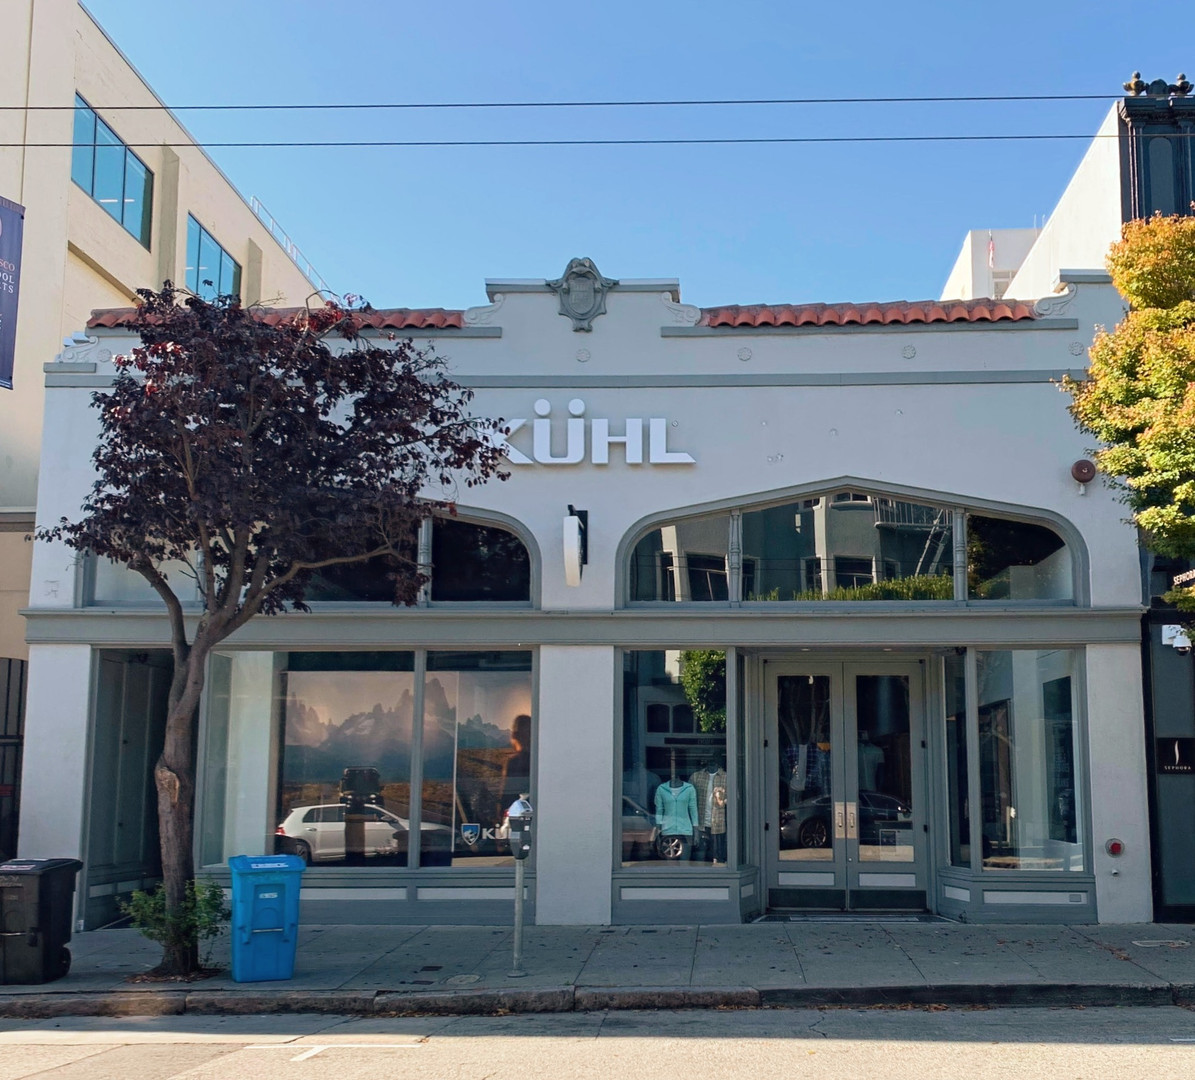 KUHL | Union Street, San Francisco